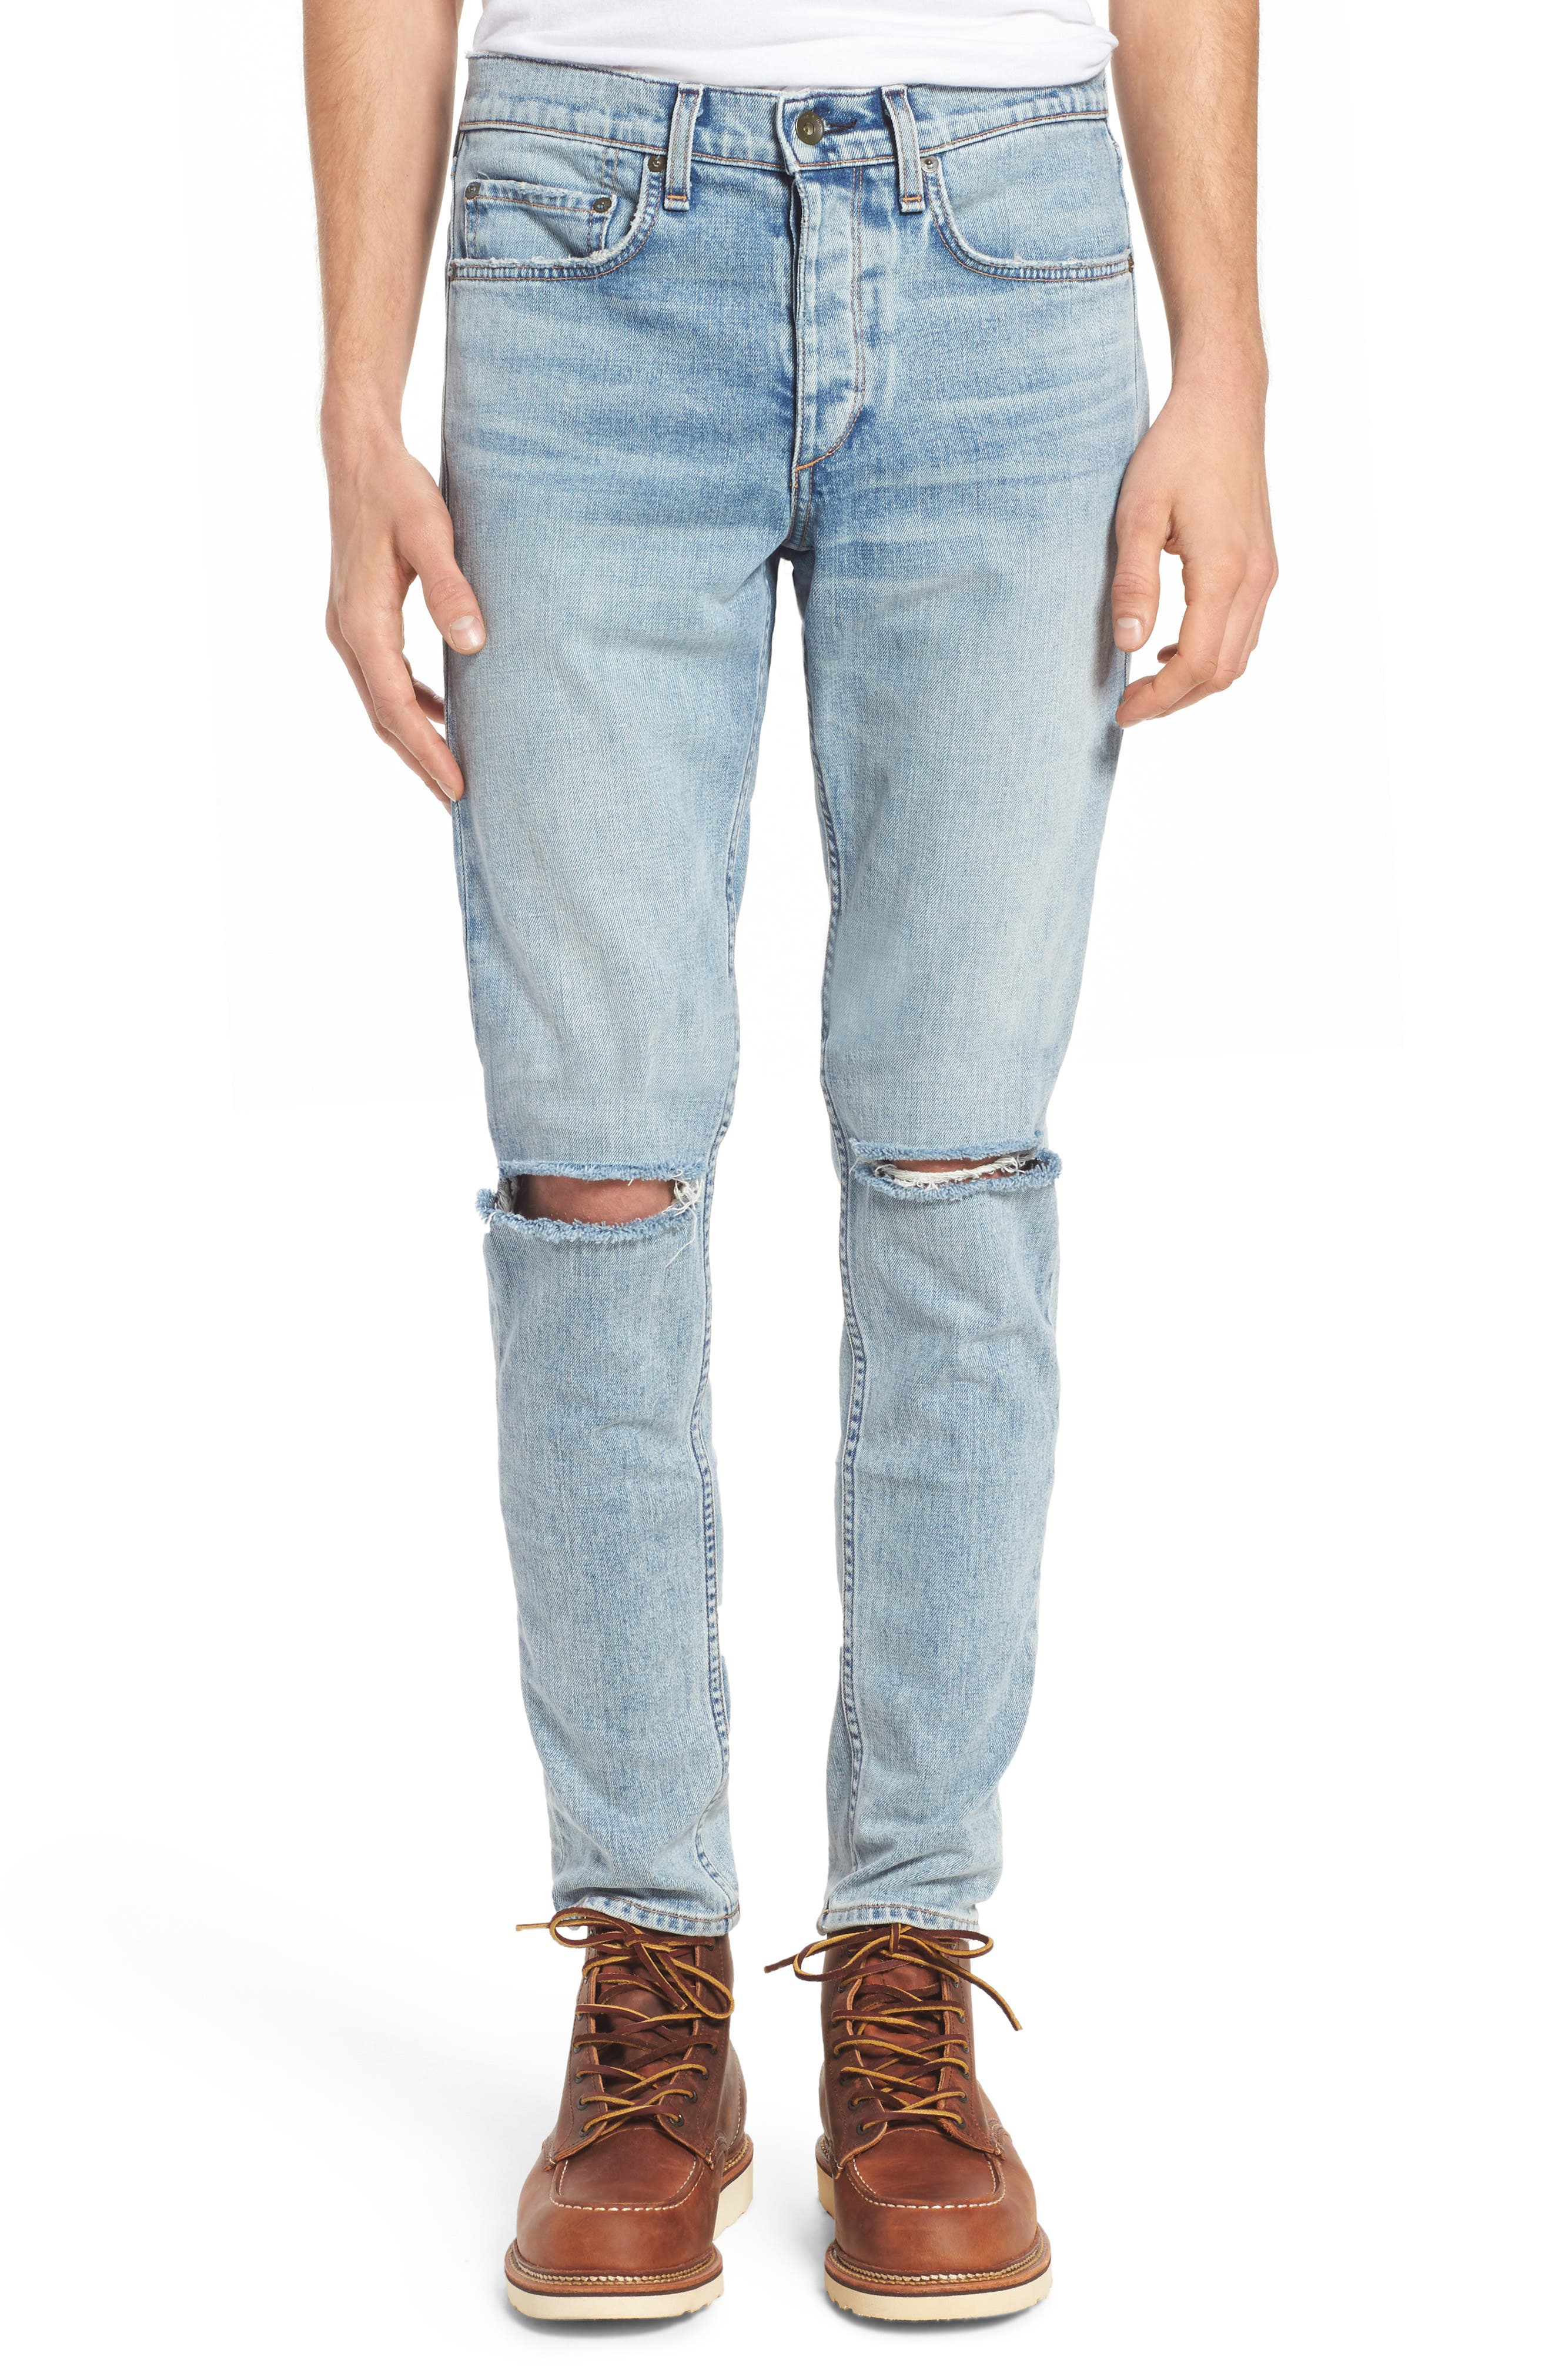 Fit 1 Skinny Fit Jeans,                         Main,                         color, Jameson With Holes